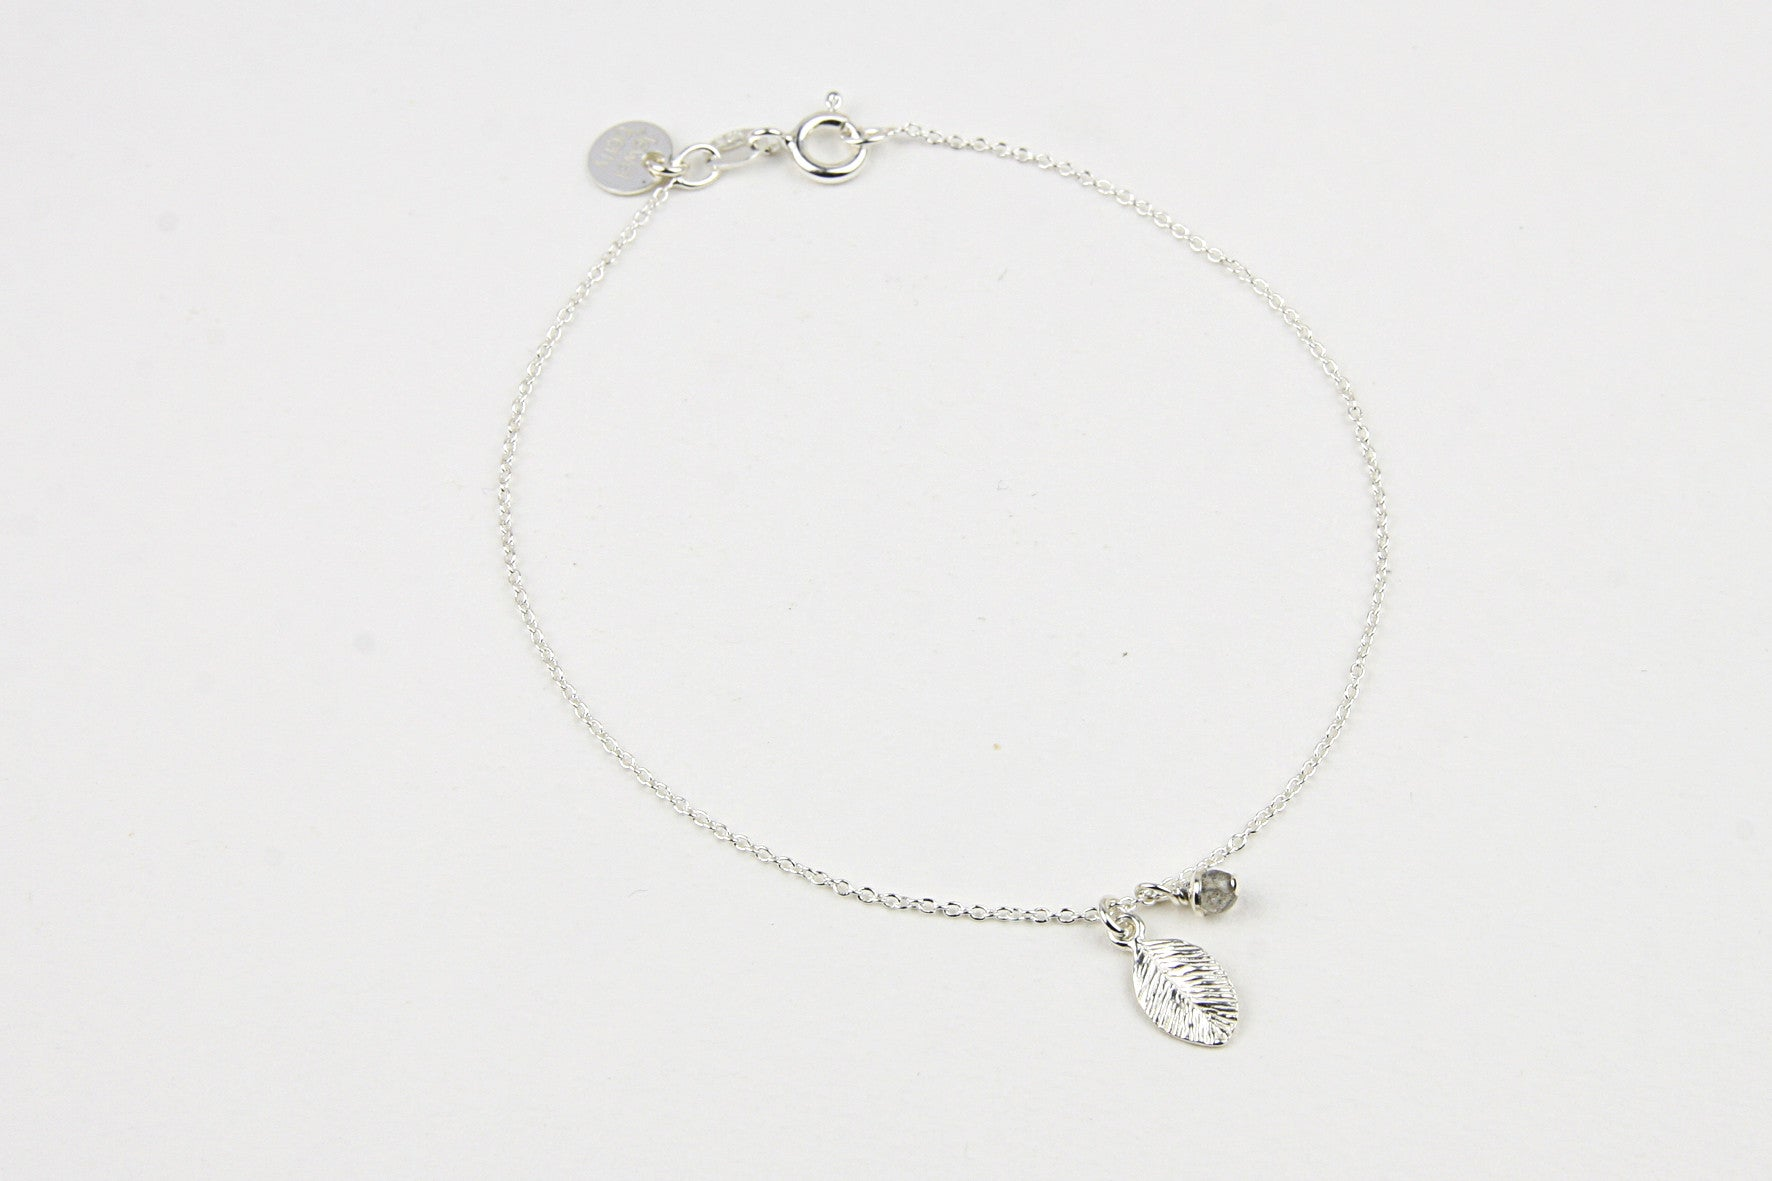 ....Armband TINY LEAF 925 Silber...Bracelet TINY LEAF 925 Sterling Silver....